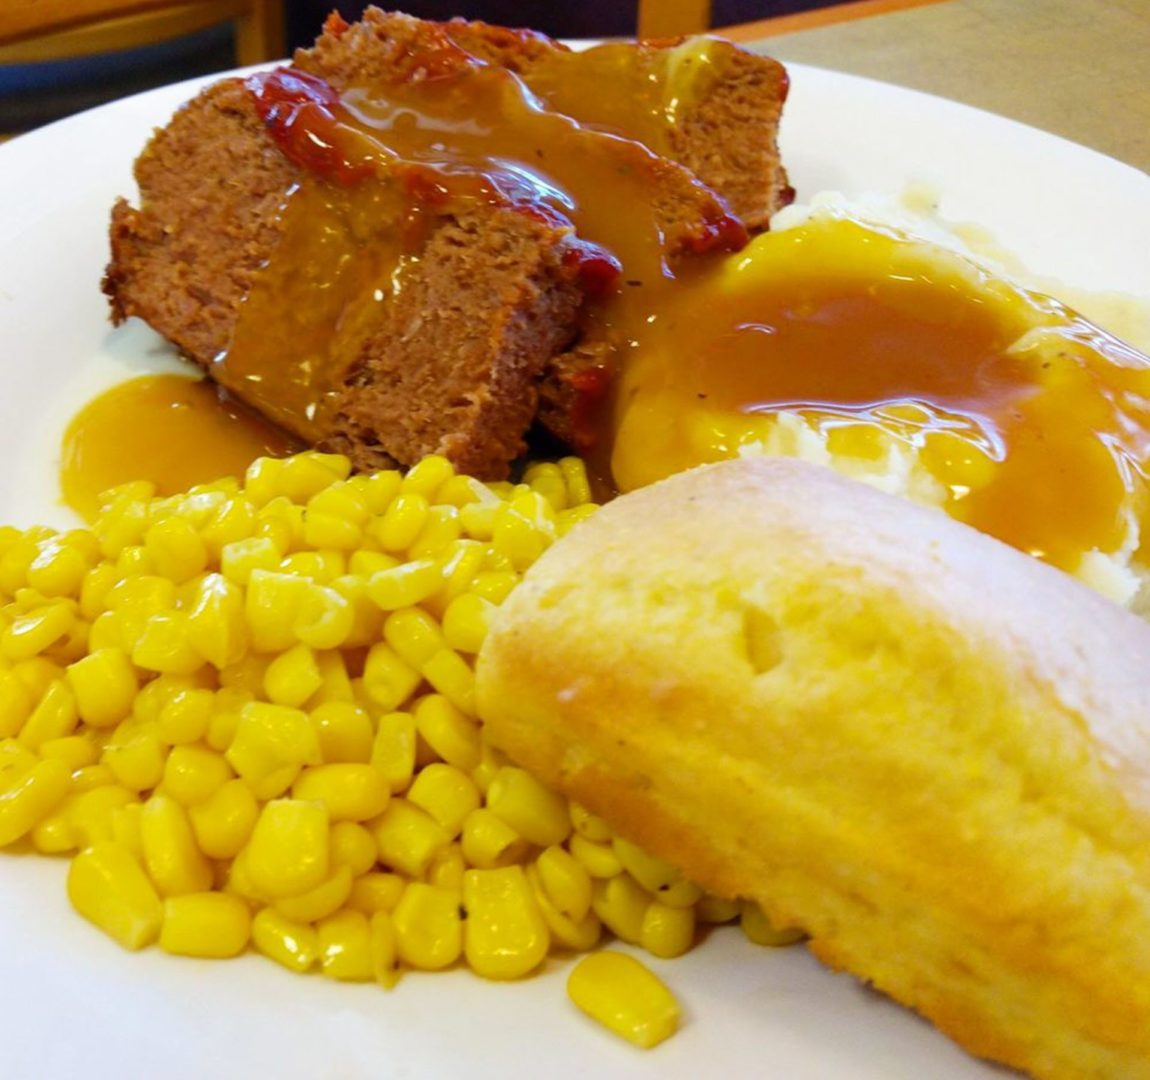 Meatloaf, mashed potatoes, corn and biscuits